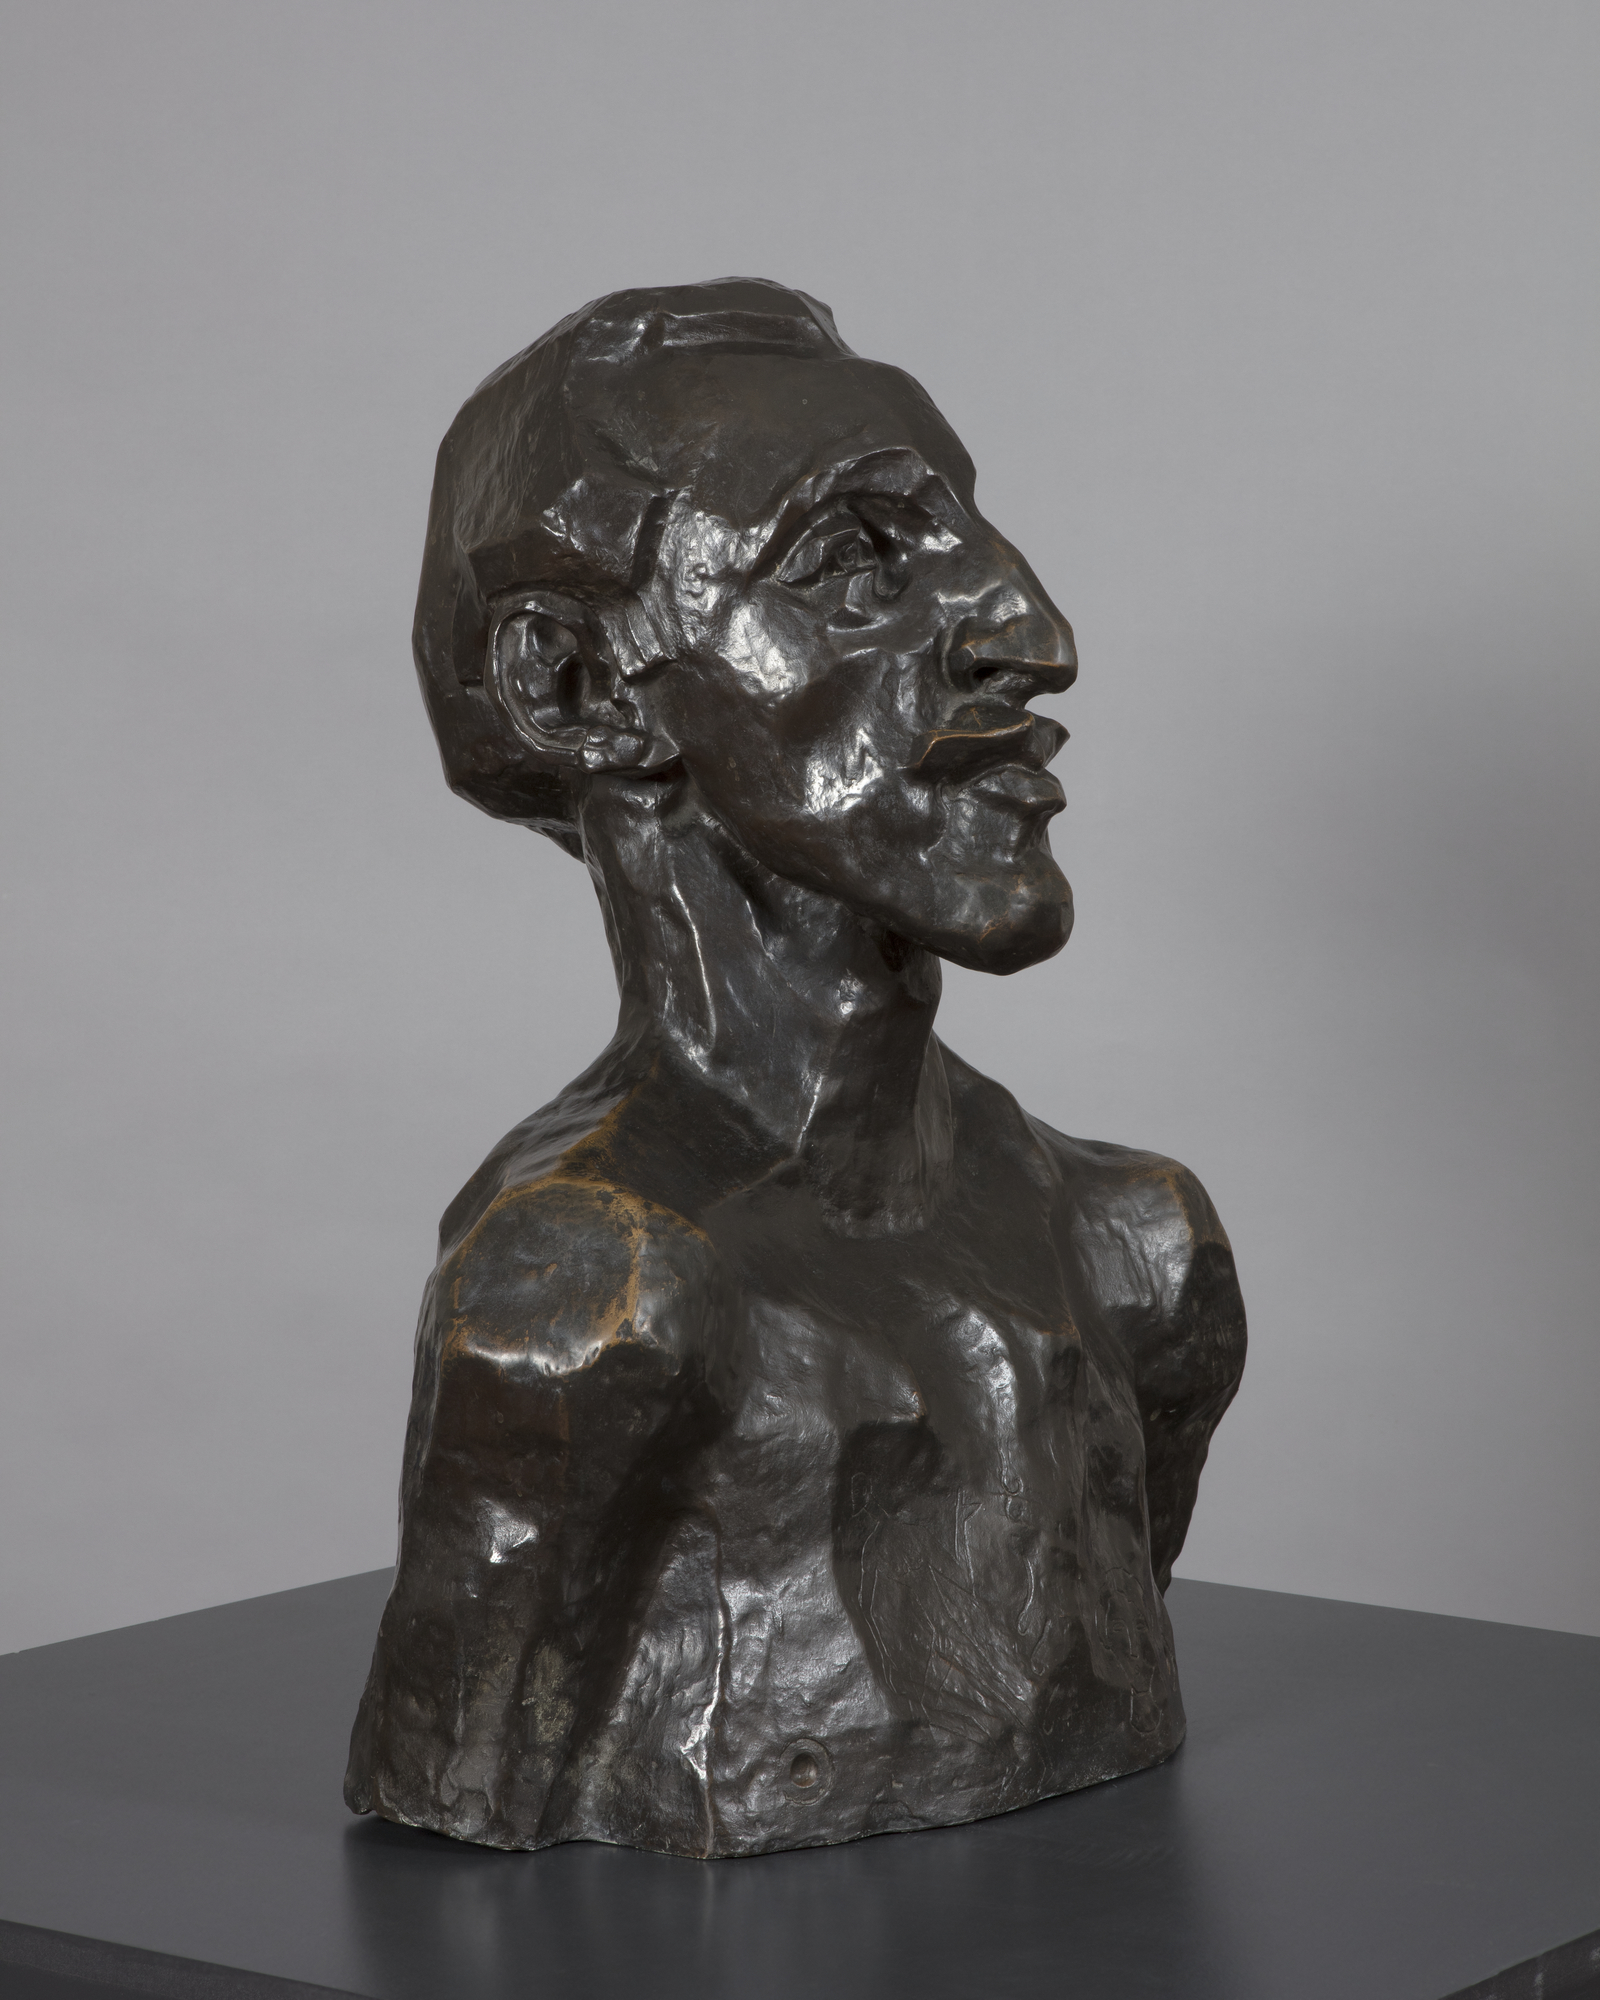 A bronze sculpture of a naked man's head and shoulders, viewed facing half-left, with an angular face and prounced chin, nose and lips as well as a short swept back receding hair style. His bare chest has been scratched to represent a tattooed design.